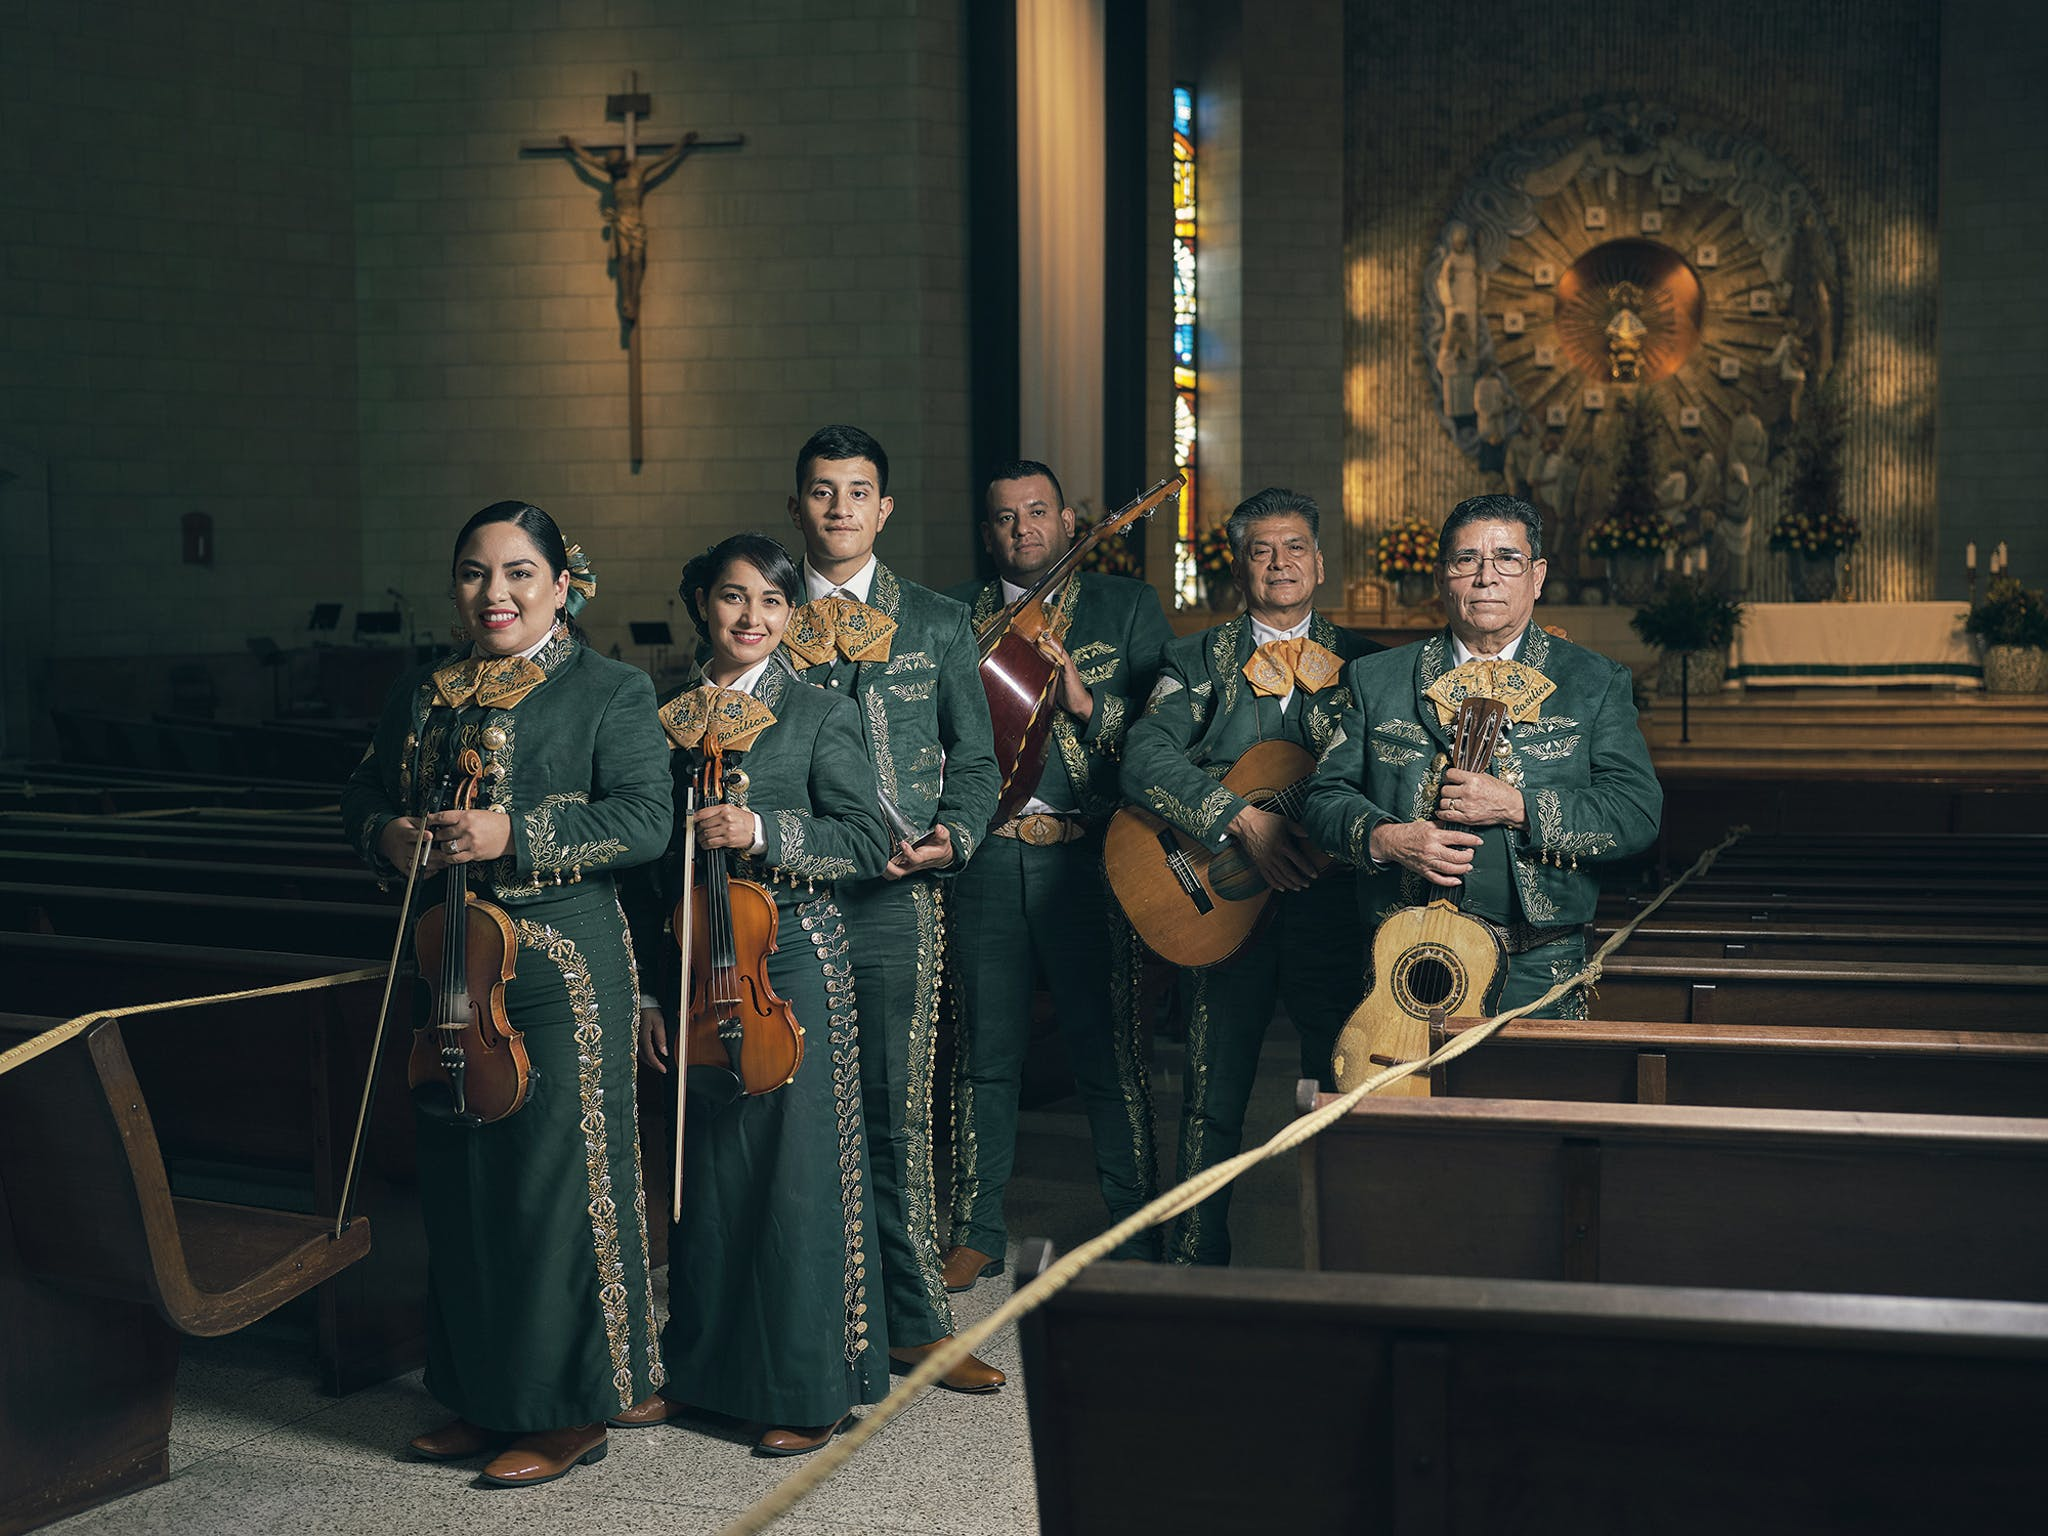 Mariachi choir members Cecilia Chavez, Ana Tirado, Victor Fortuna, Genero Fortuna, Francisco Morales, and Arturo Hernandez with their instruments at the Basilica of Our Lady of San Juan del Valle in San Juan on October 18, 2020.